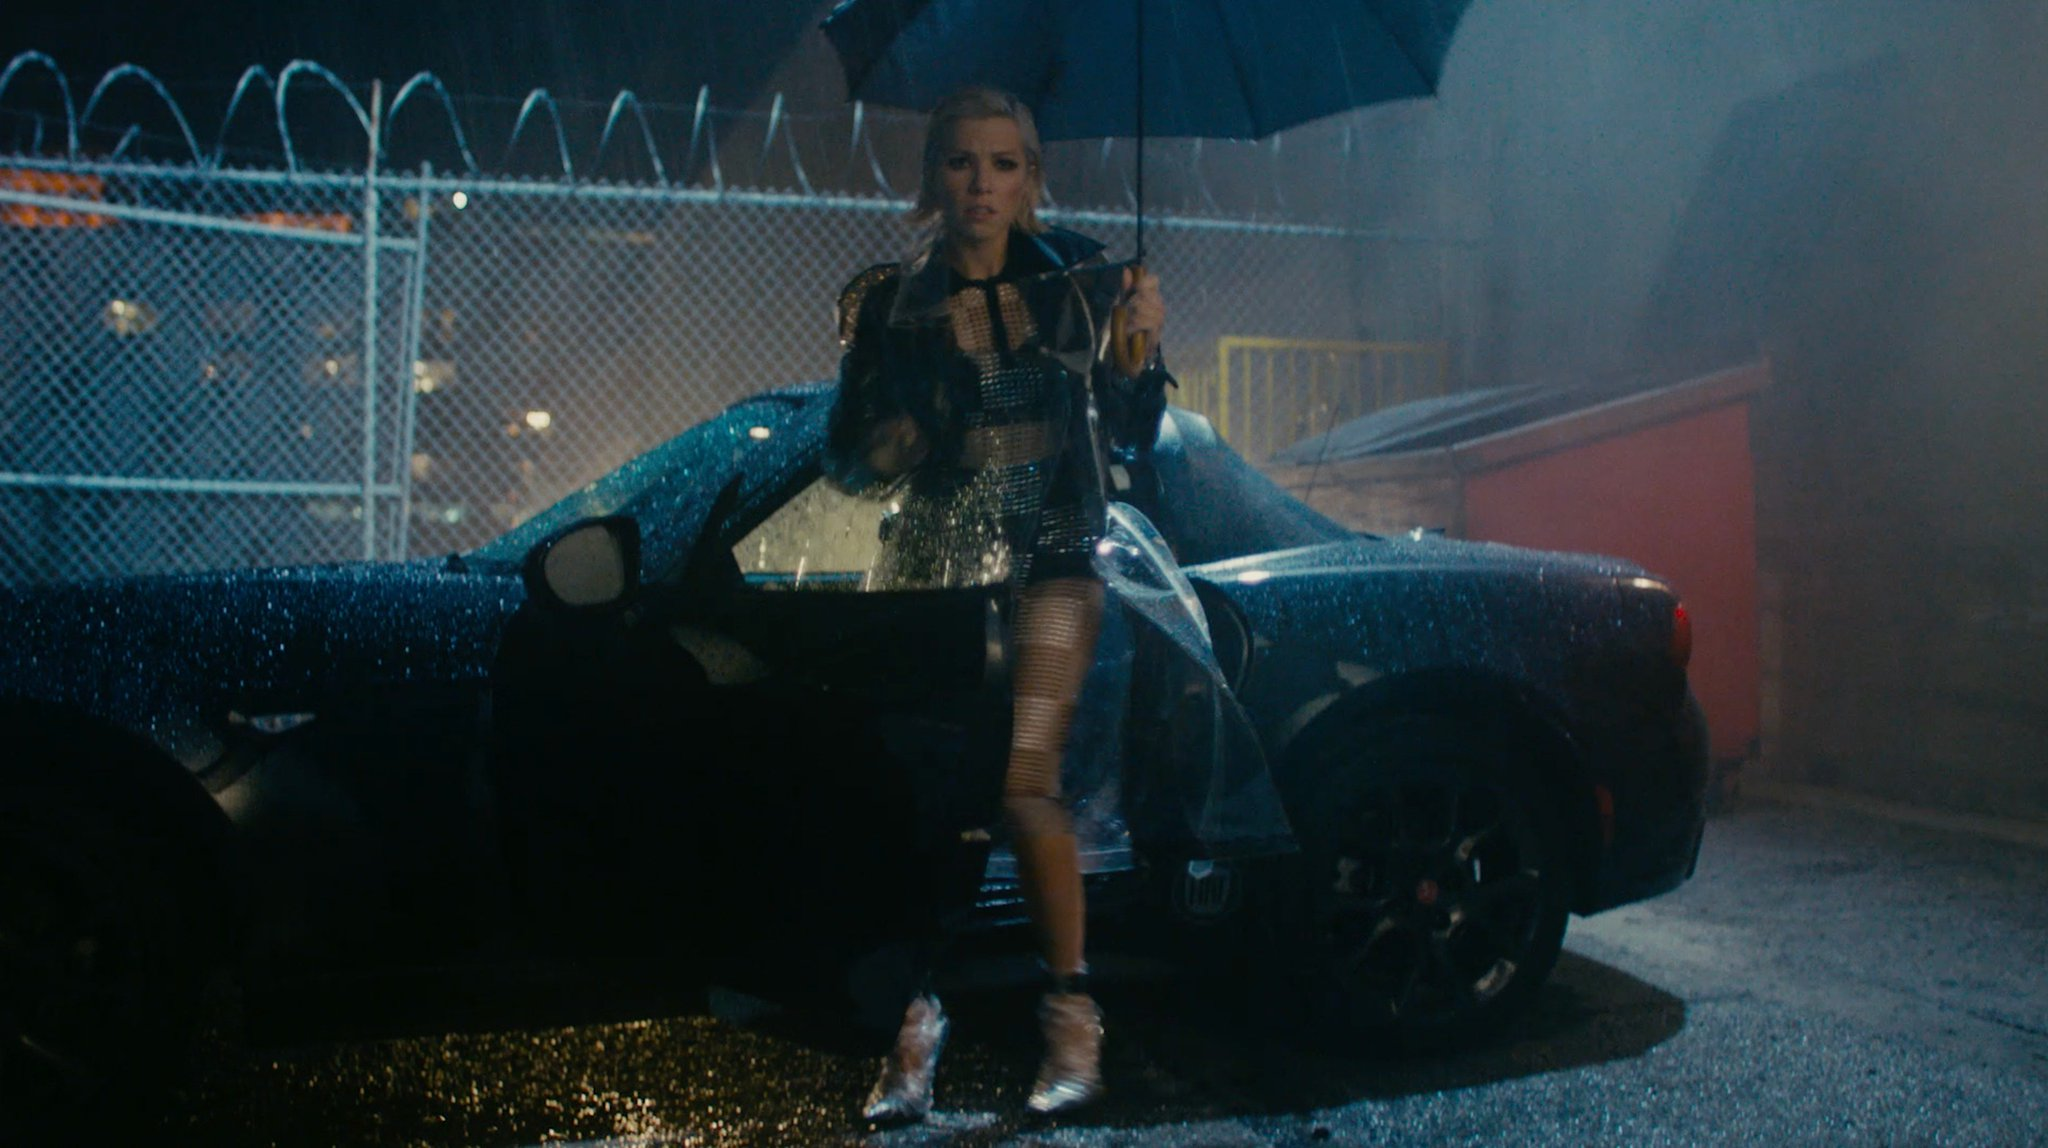 Too excited for this one!!! #NowThatIFoundYou music video out tomorrow! ☔️ https://t.co/gWtaQk8esZ